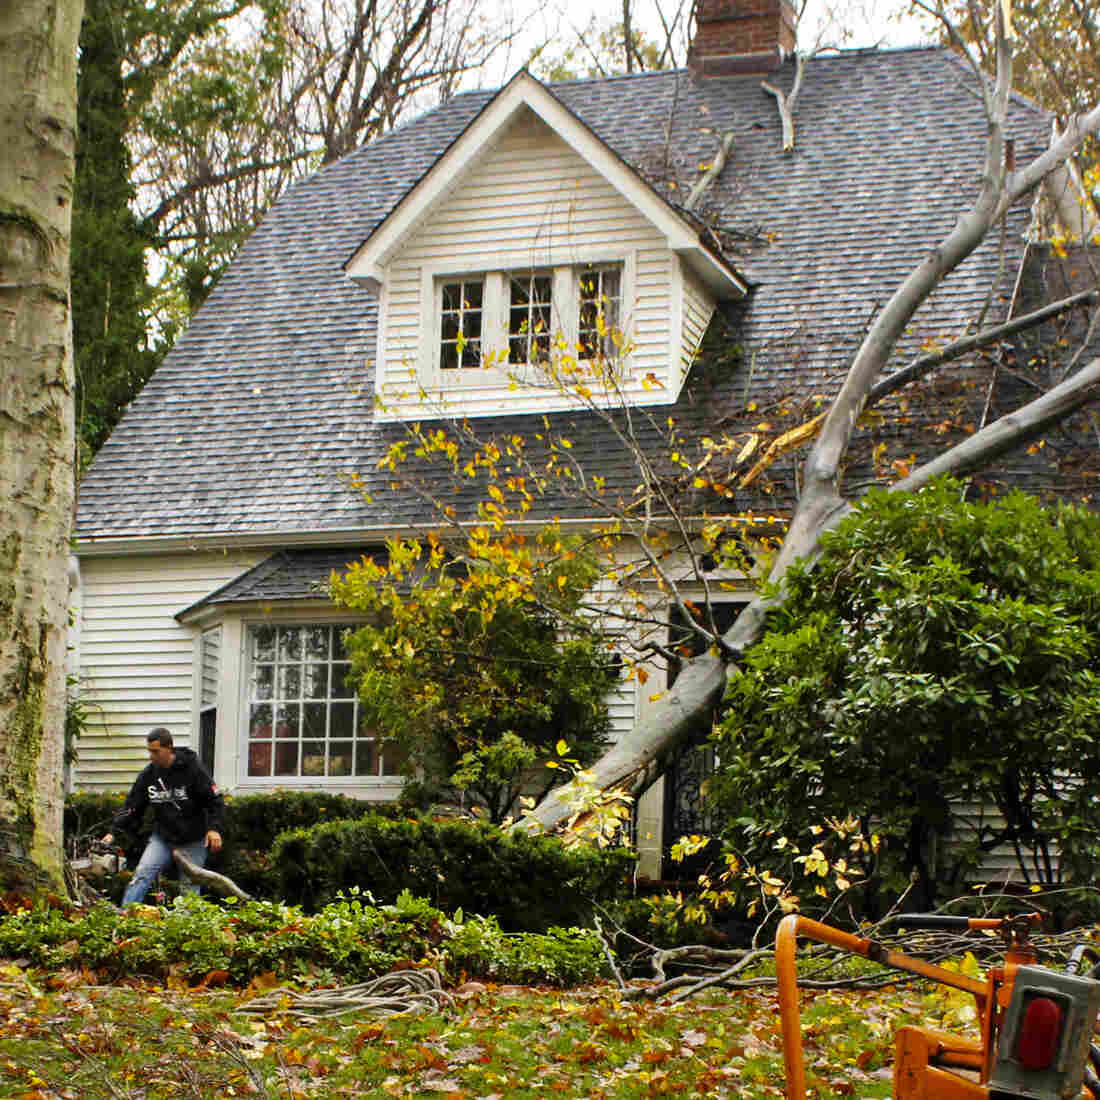 Storm Leaves Many Facing Tricky Insurance Process